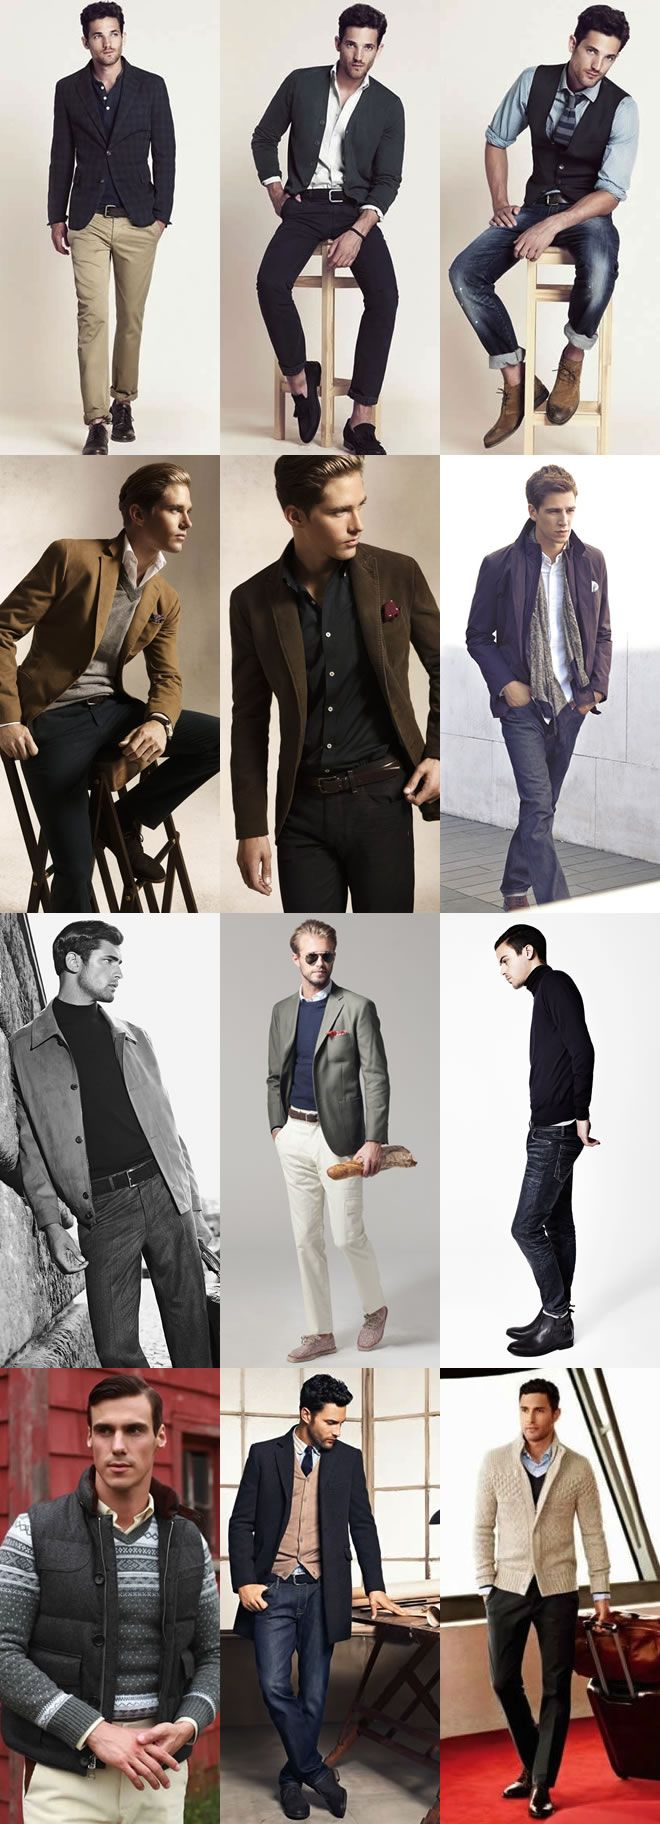 Pin by neformat group on Общие подборки pinterest mens fashion